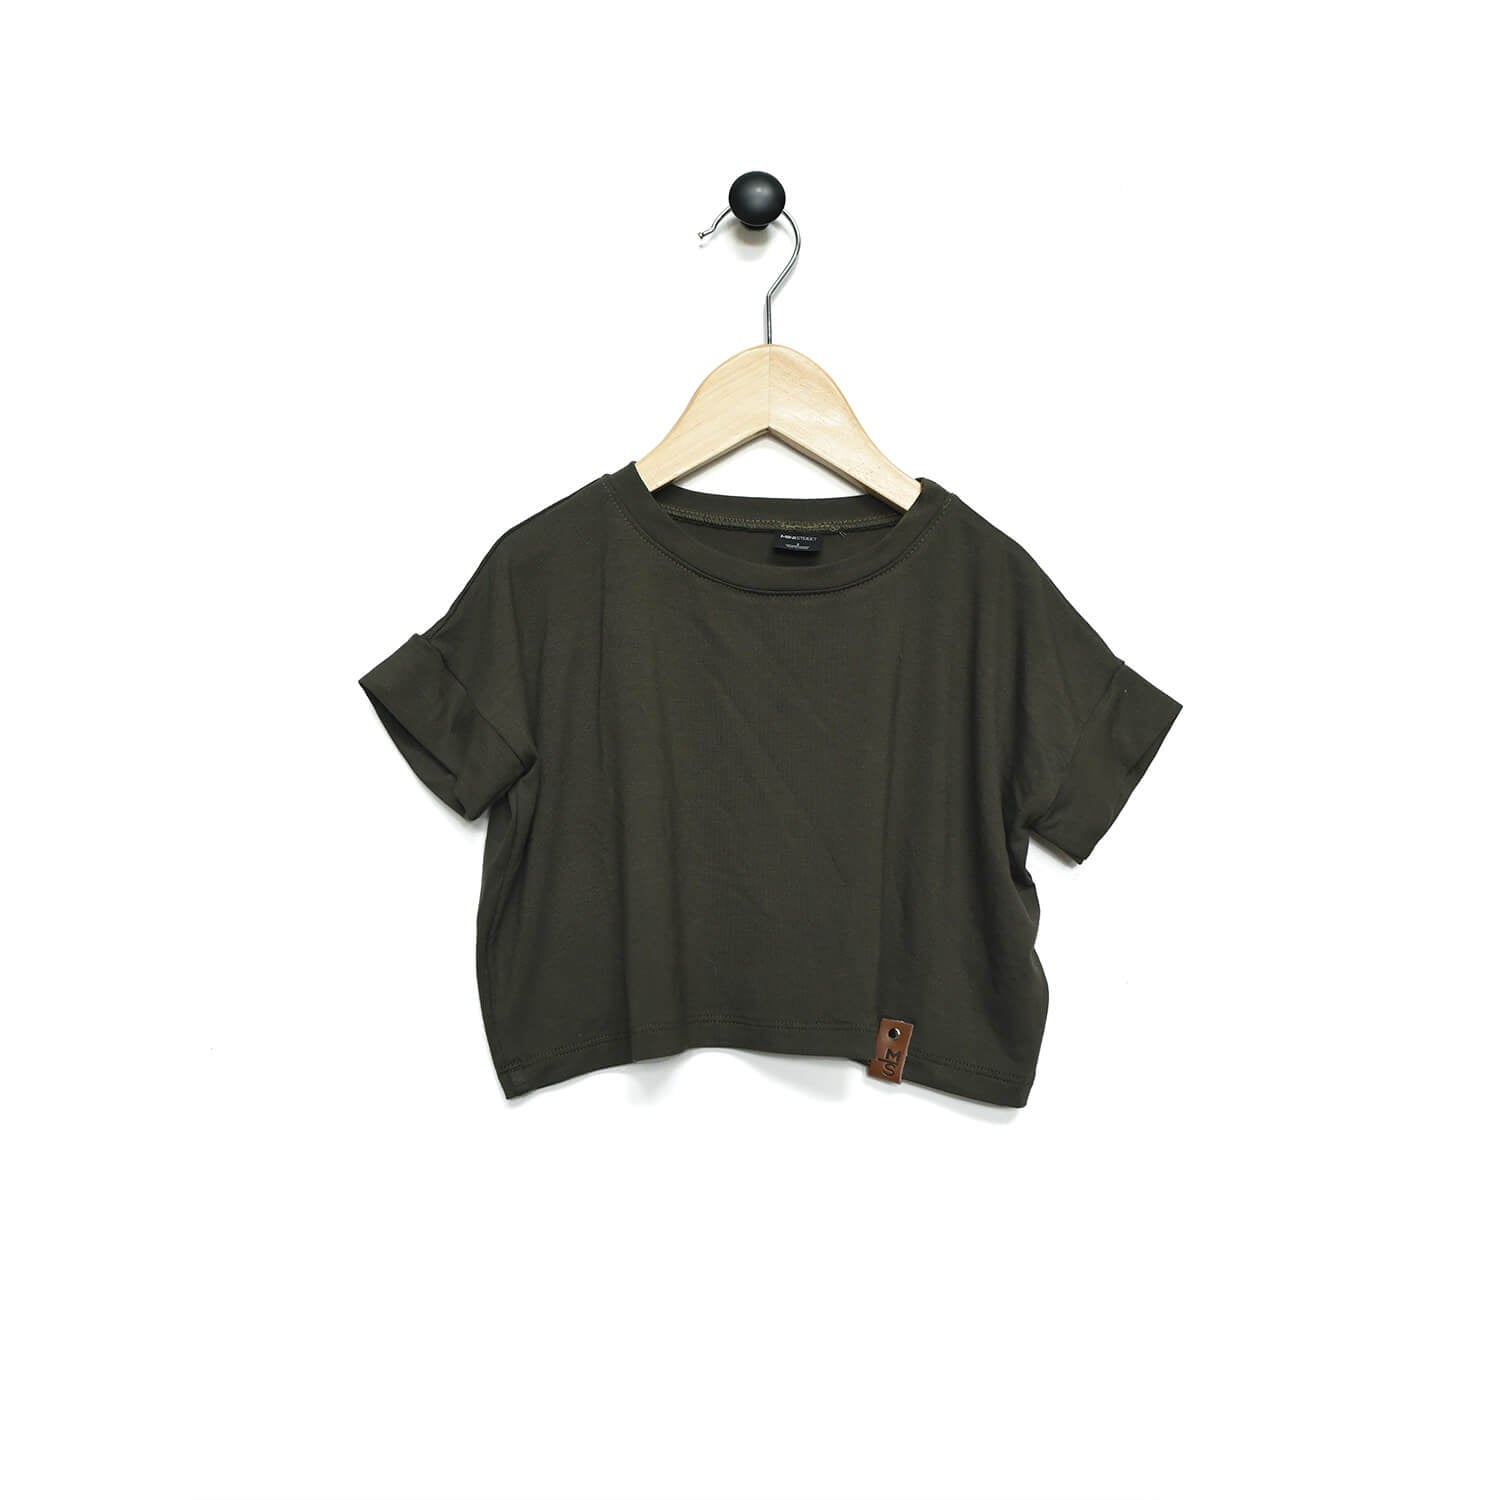 Blaire Crop Top - Olive